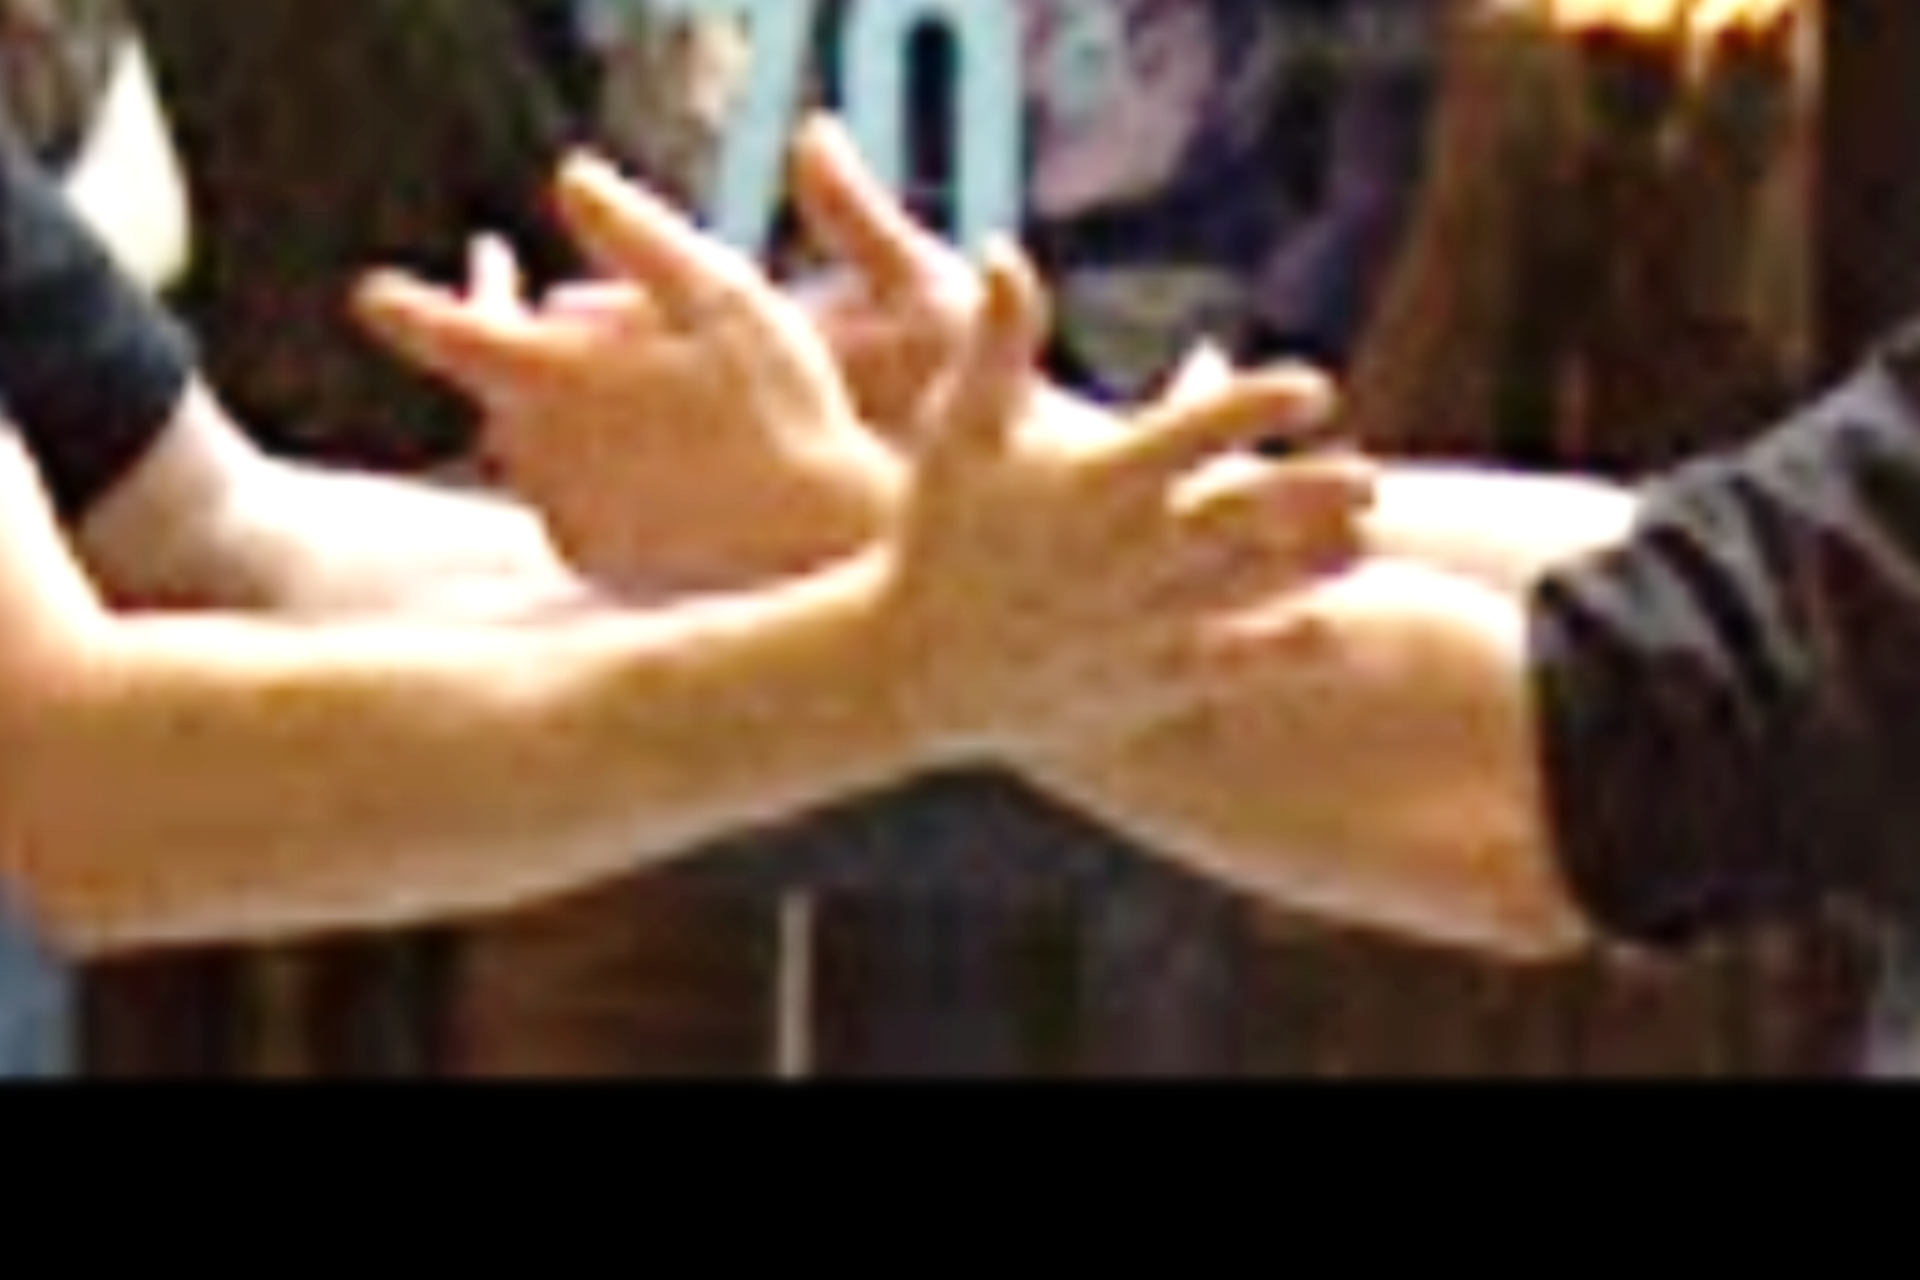 tai chi hands.png